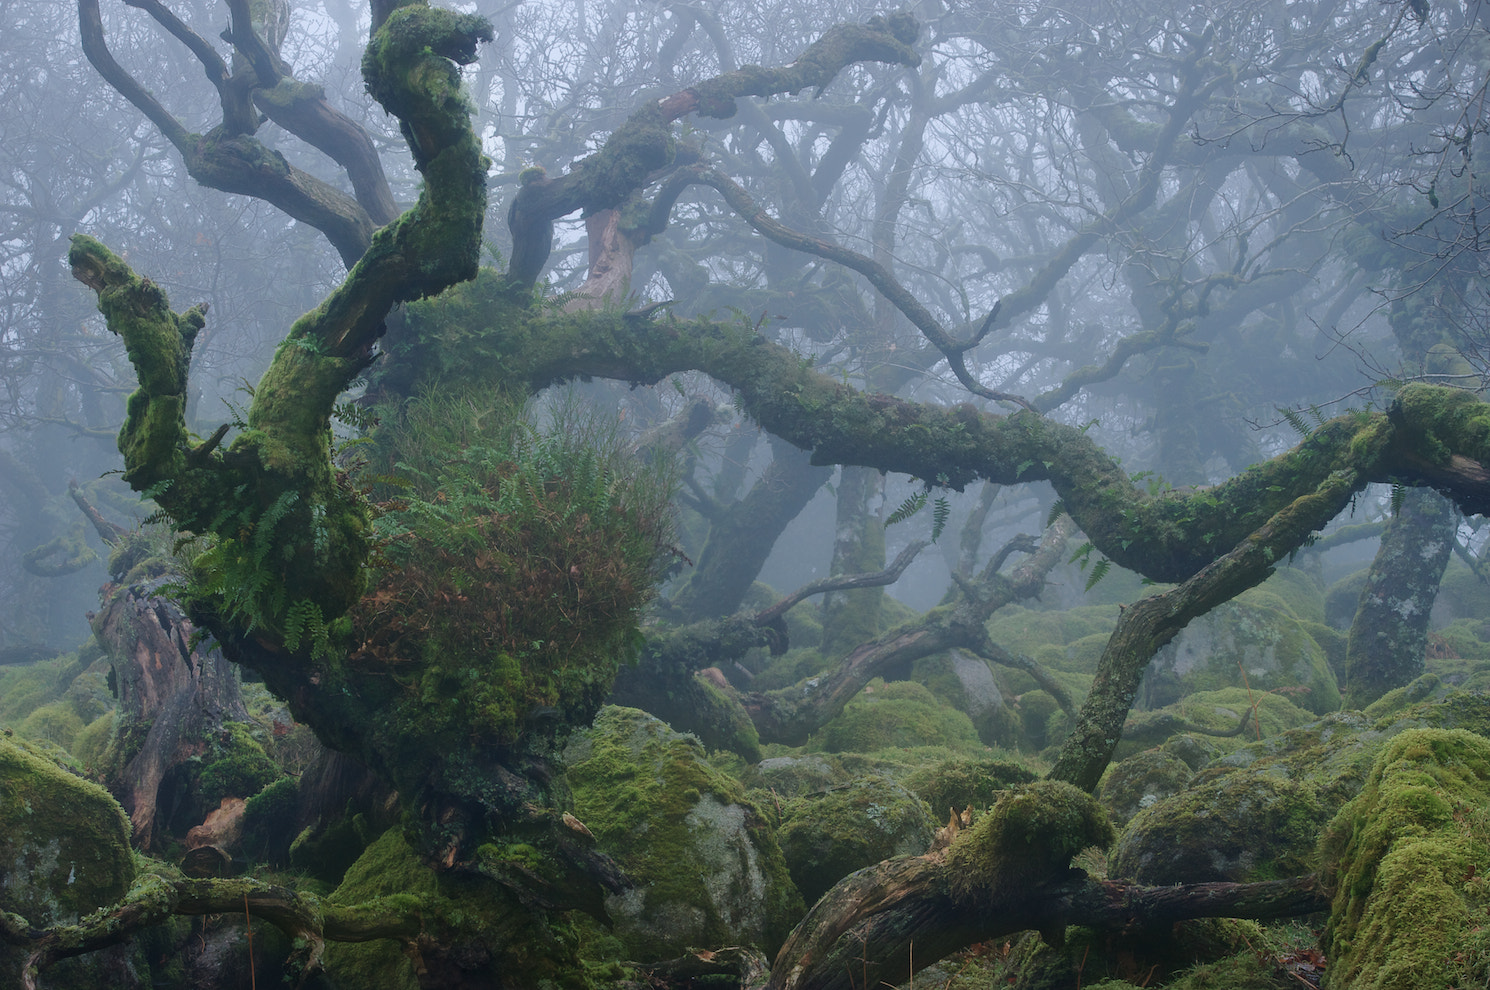 Photograph Primordial by duncan george on 500px